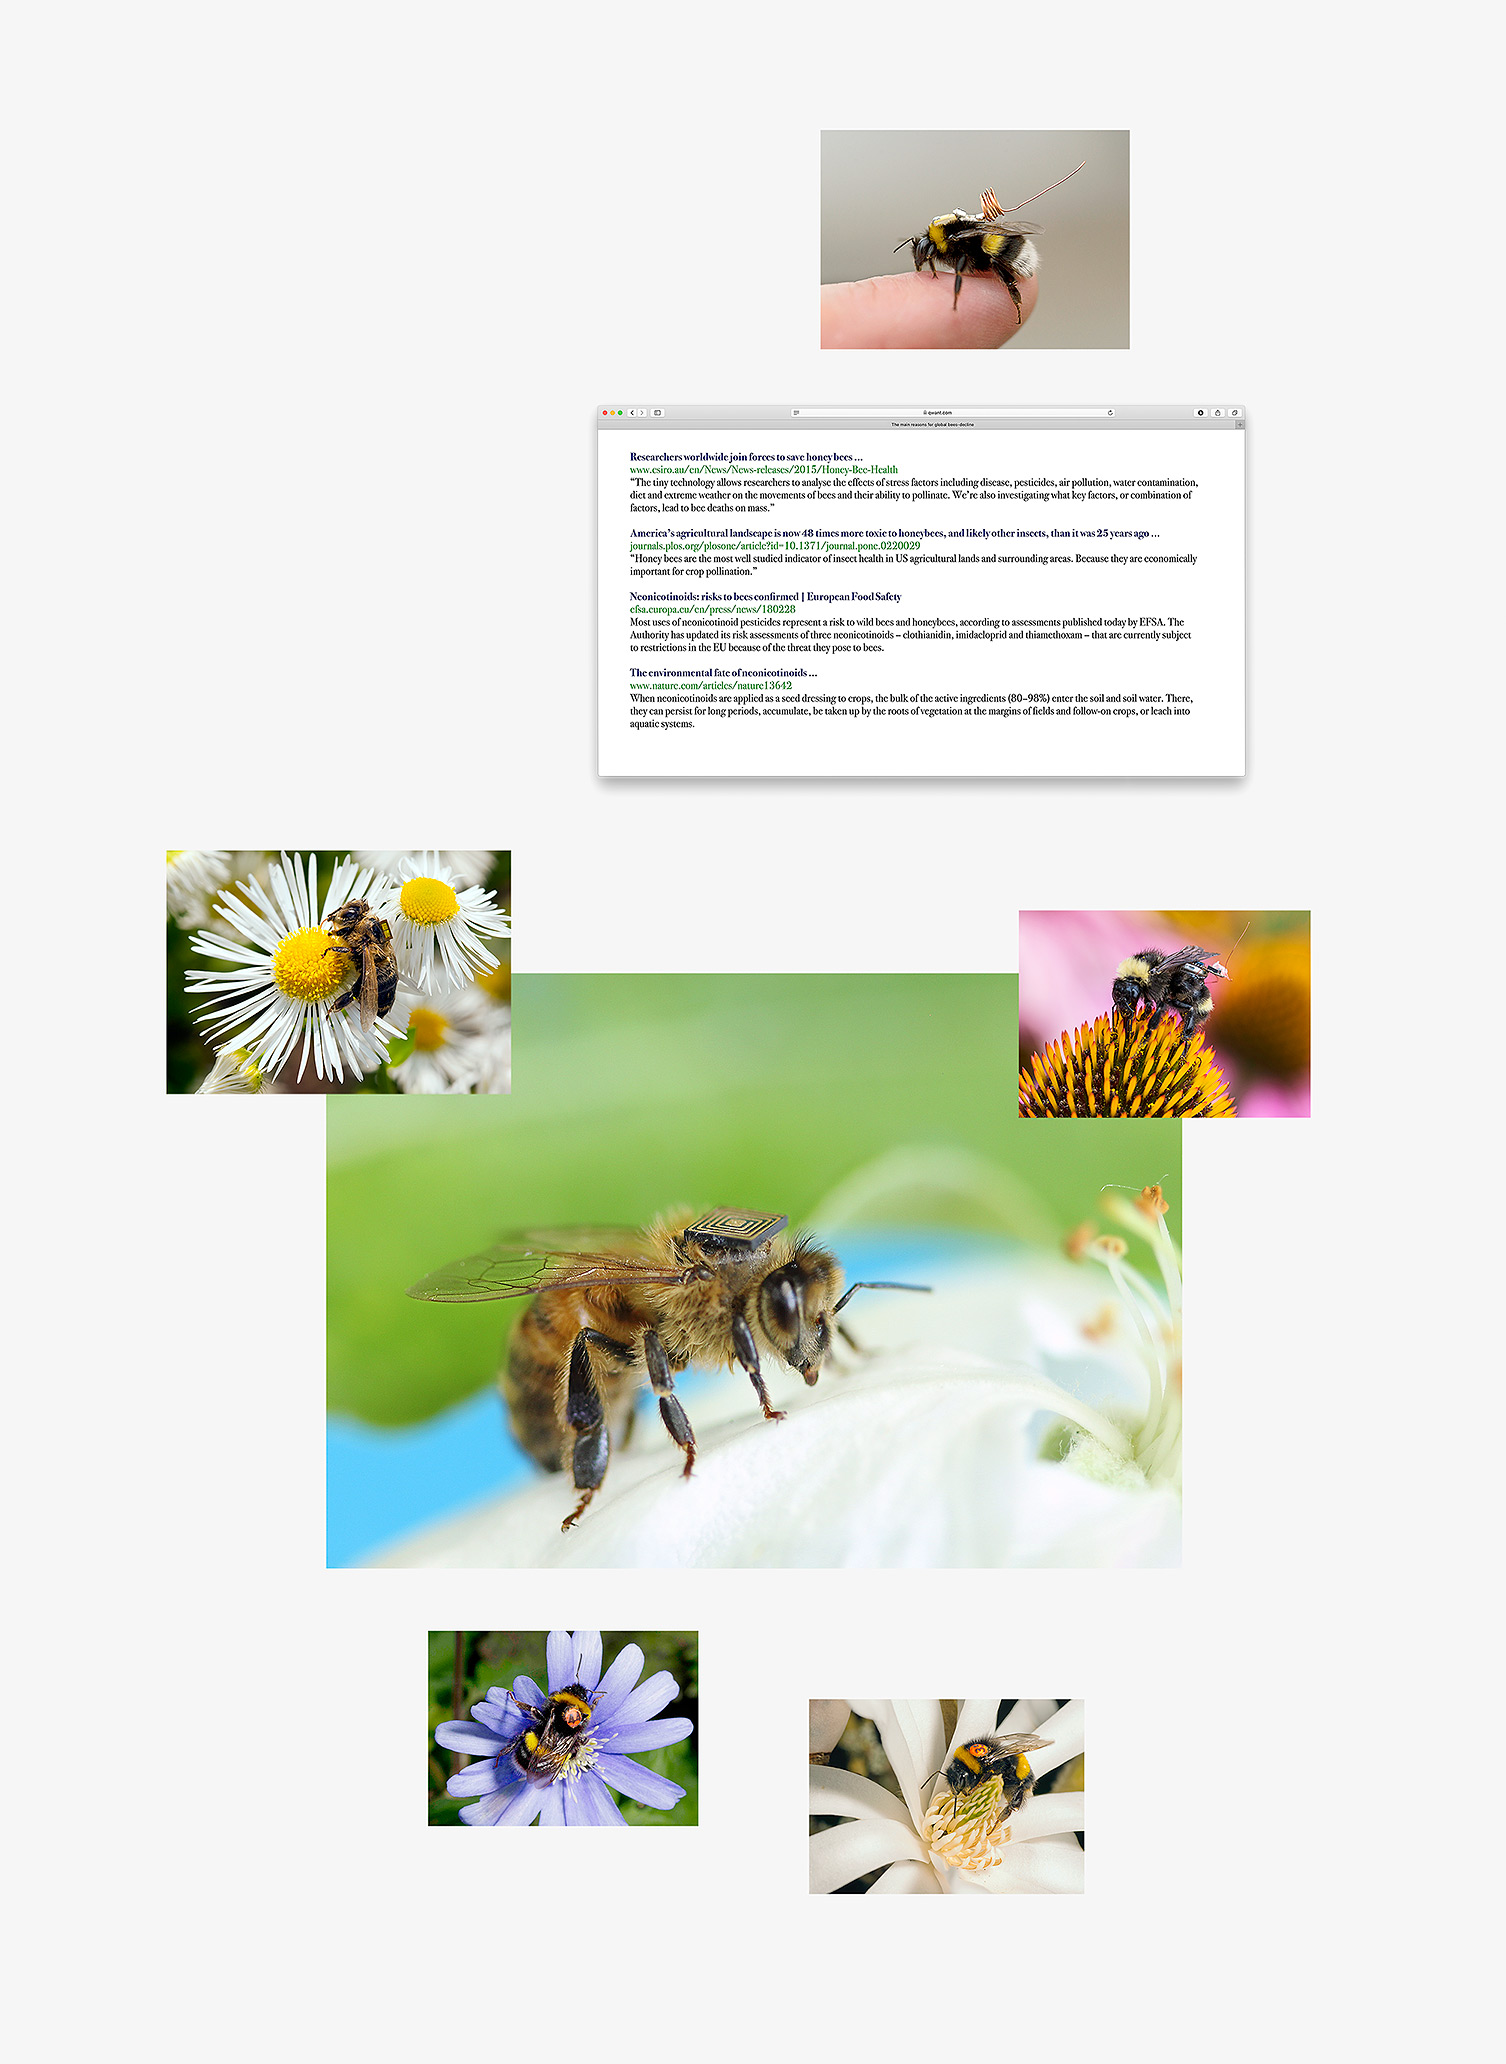 tracking_bees